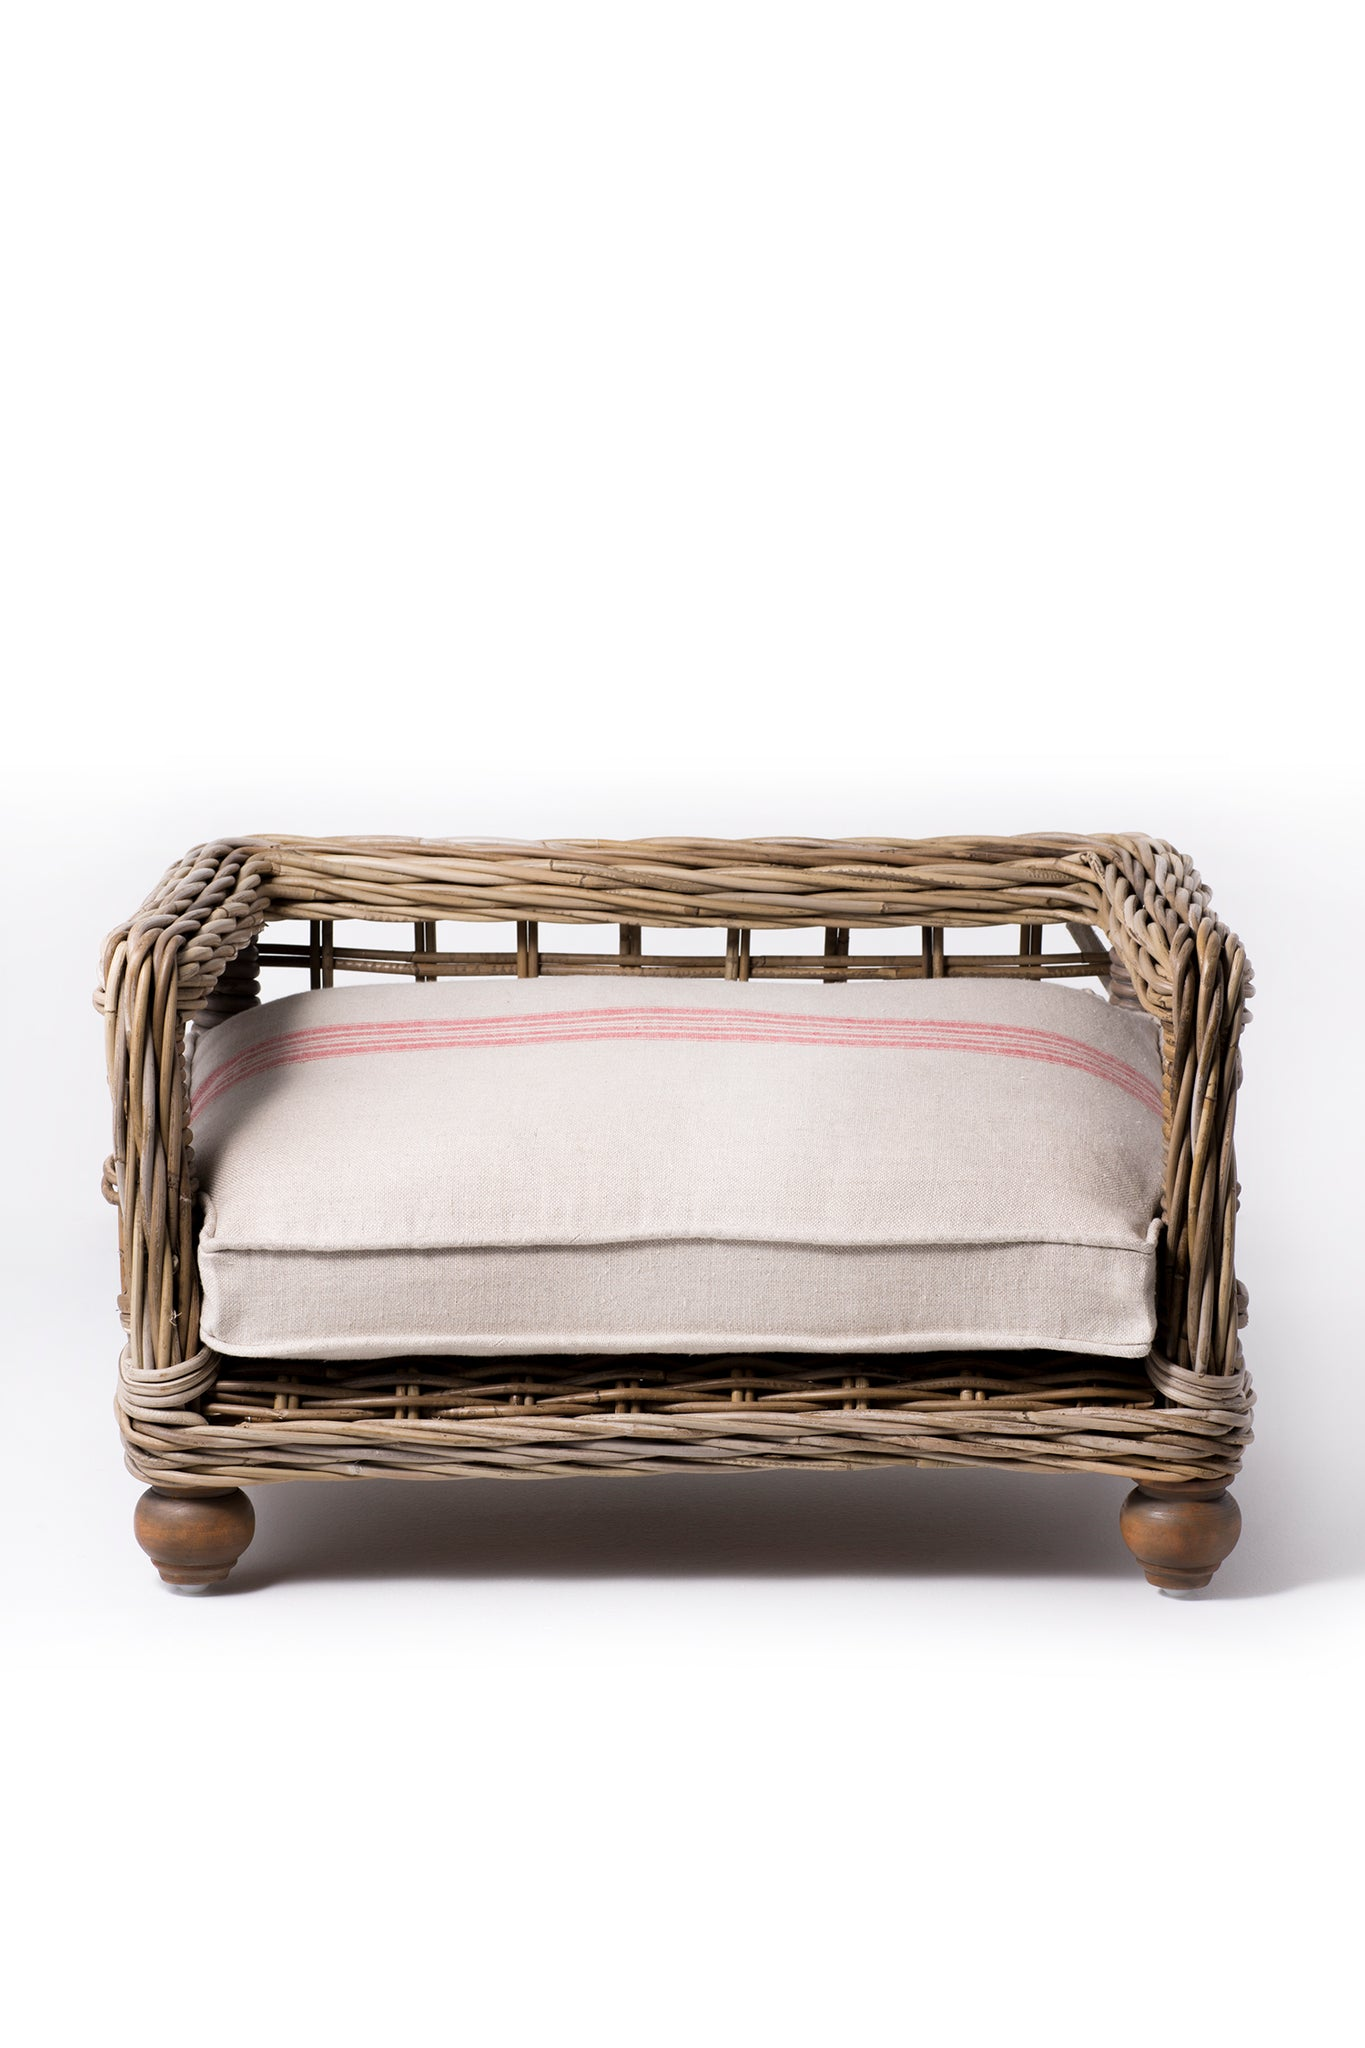 Canine Styles Rattan Dog Bed